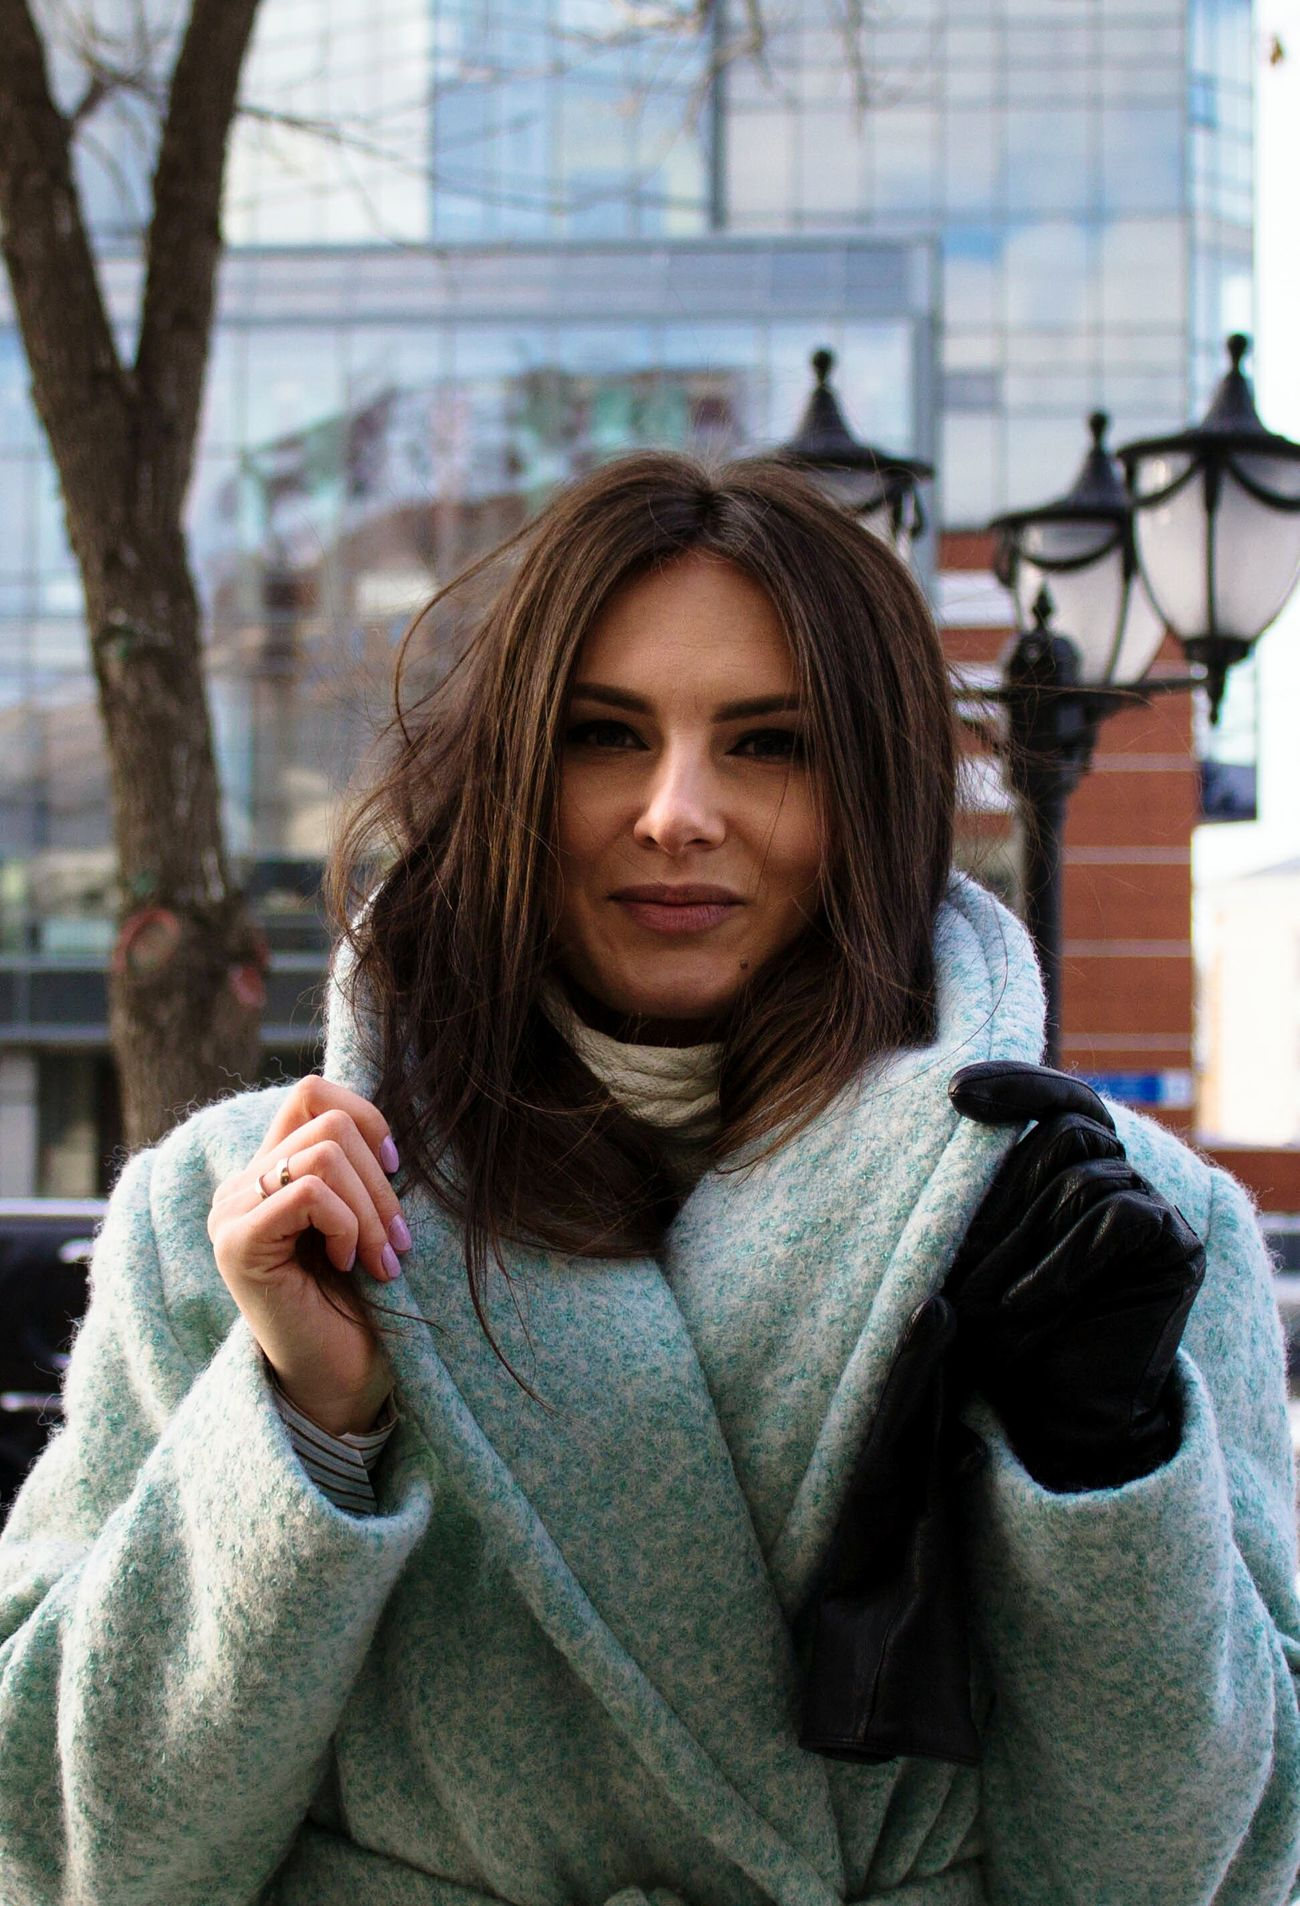 Warm Clothing Young Adult Portrait One Woman Only Only Women Adults Only One Person One Young Woman Only Winter Beautiful People Young Women Beauty Adult People Outdoors City Overcoat Human Body Part Day City Women Happiness Street Photography Street